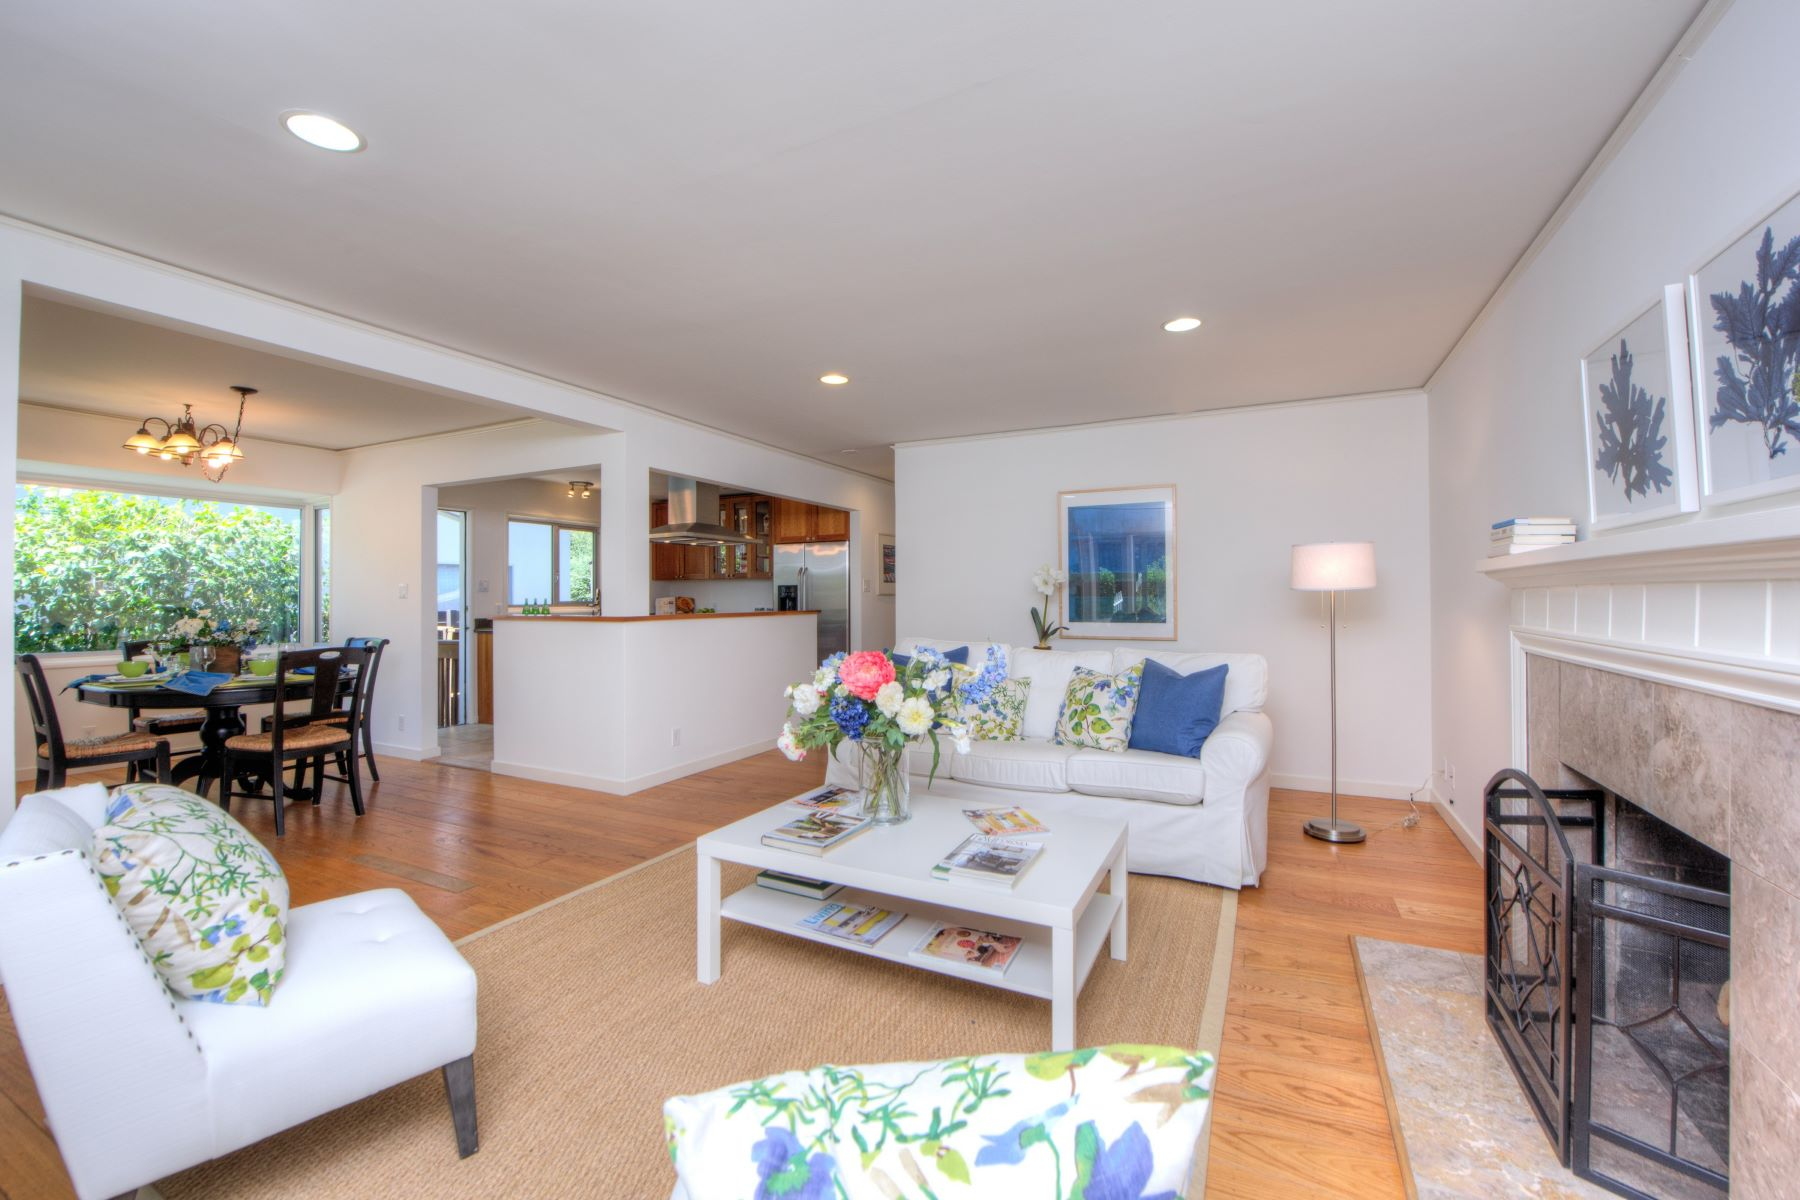 Single Family Home for Sale at One-Level Charmer in Coveted San Anselmo! 47 El Cerrito Ave San Anselmo, California 94960 United States